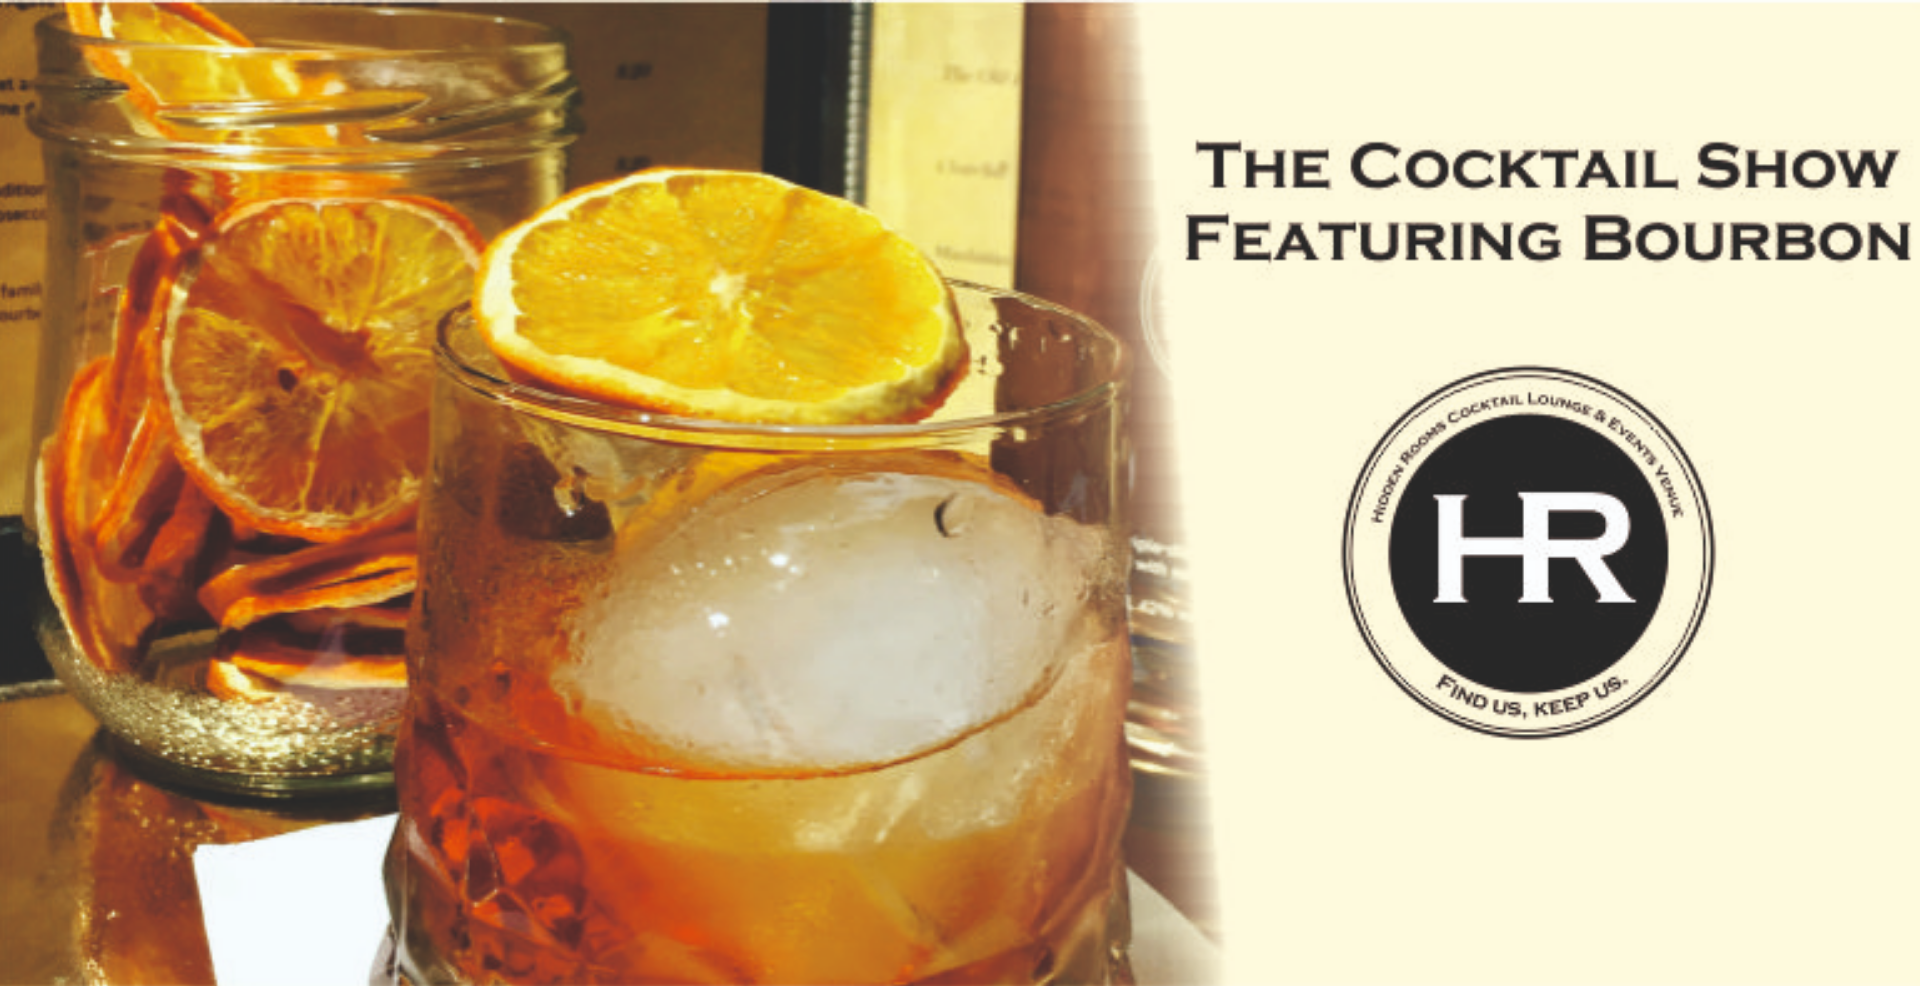 The Cocktail Show featuring Bourbon